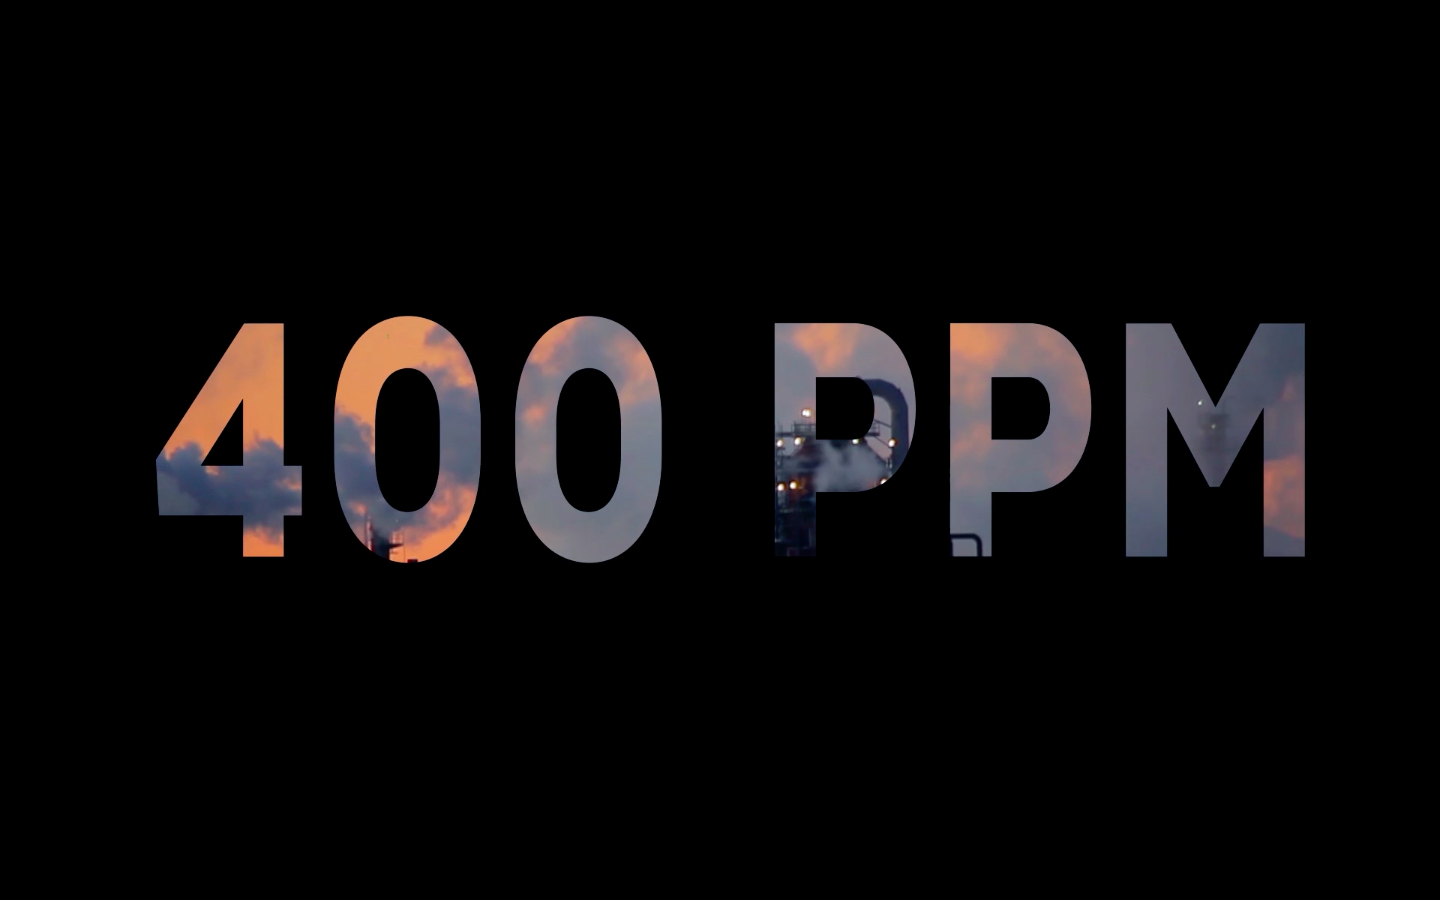 400 PPM Documentary Released!